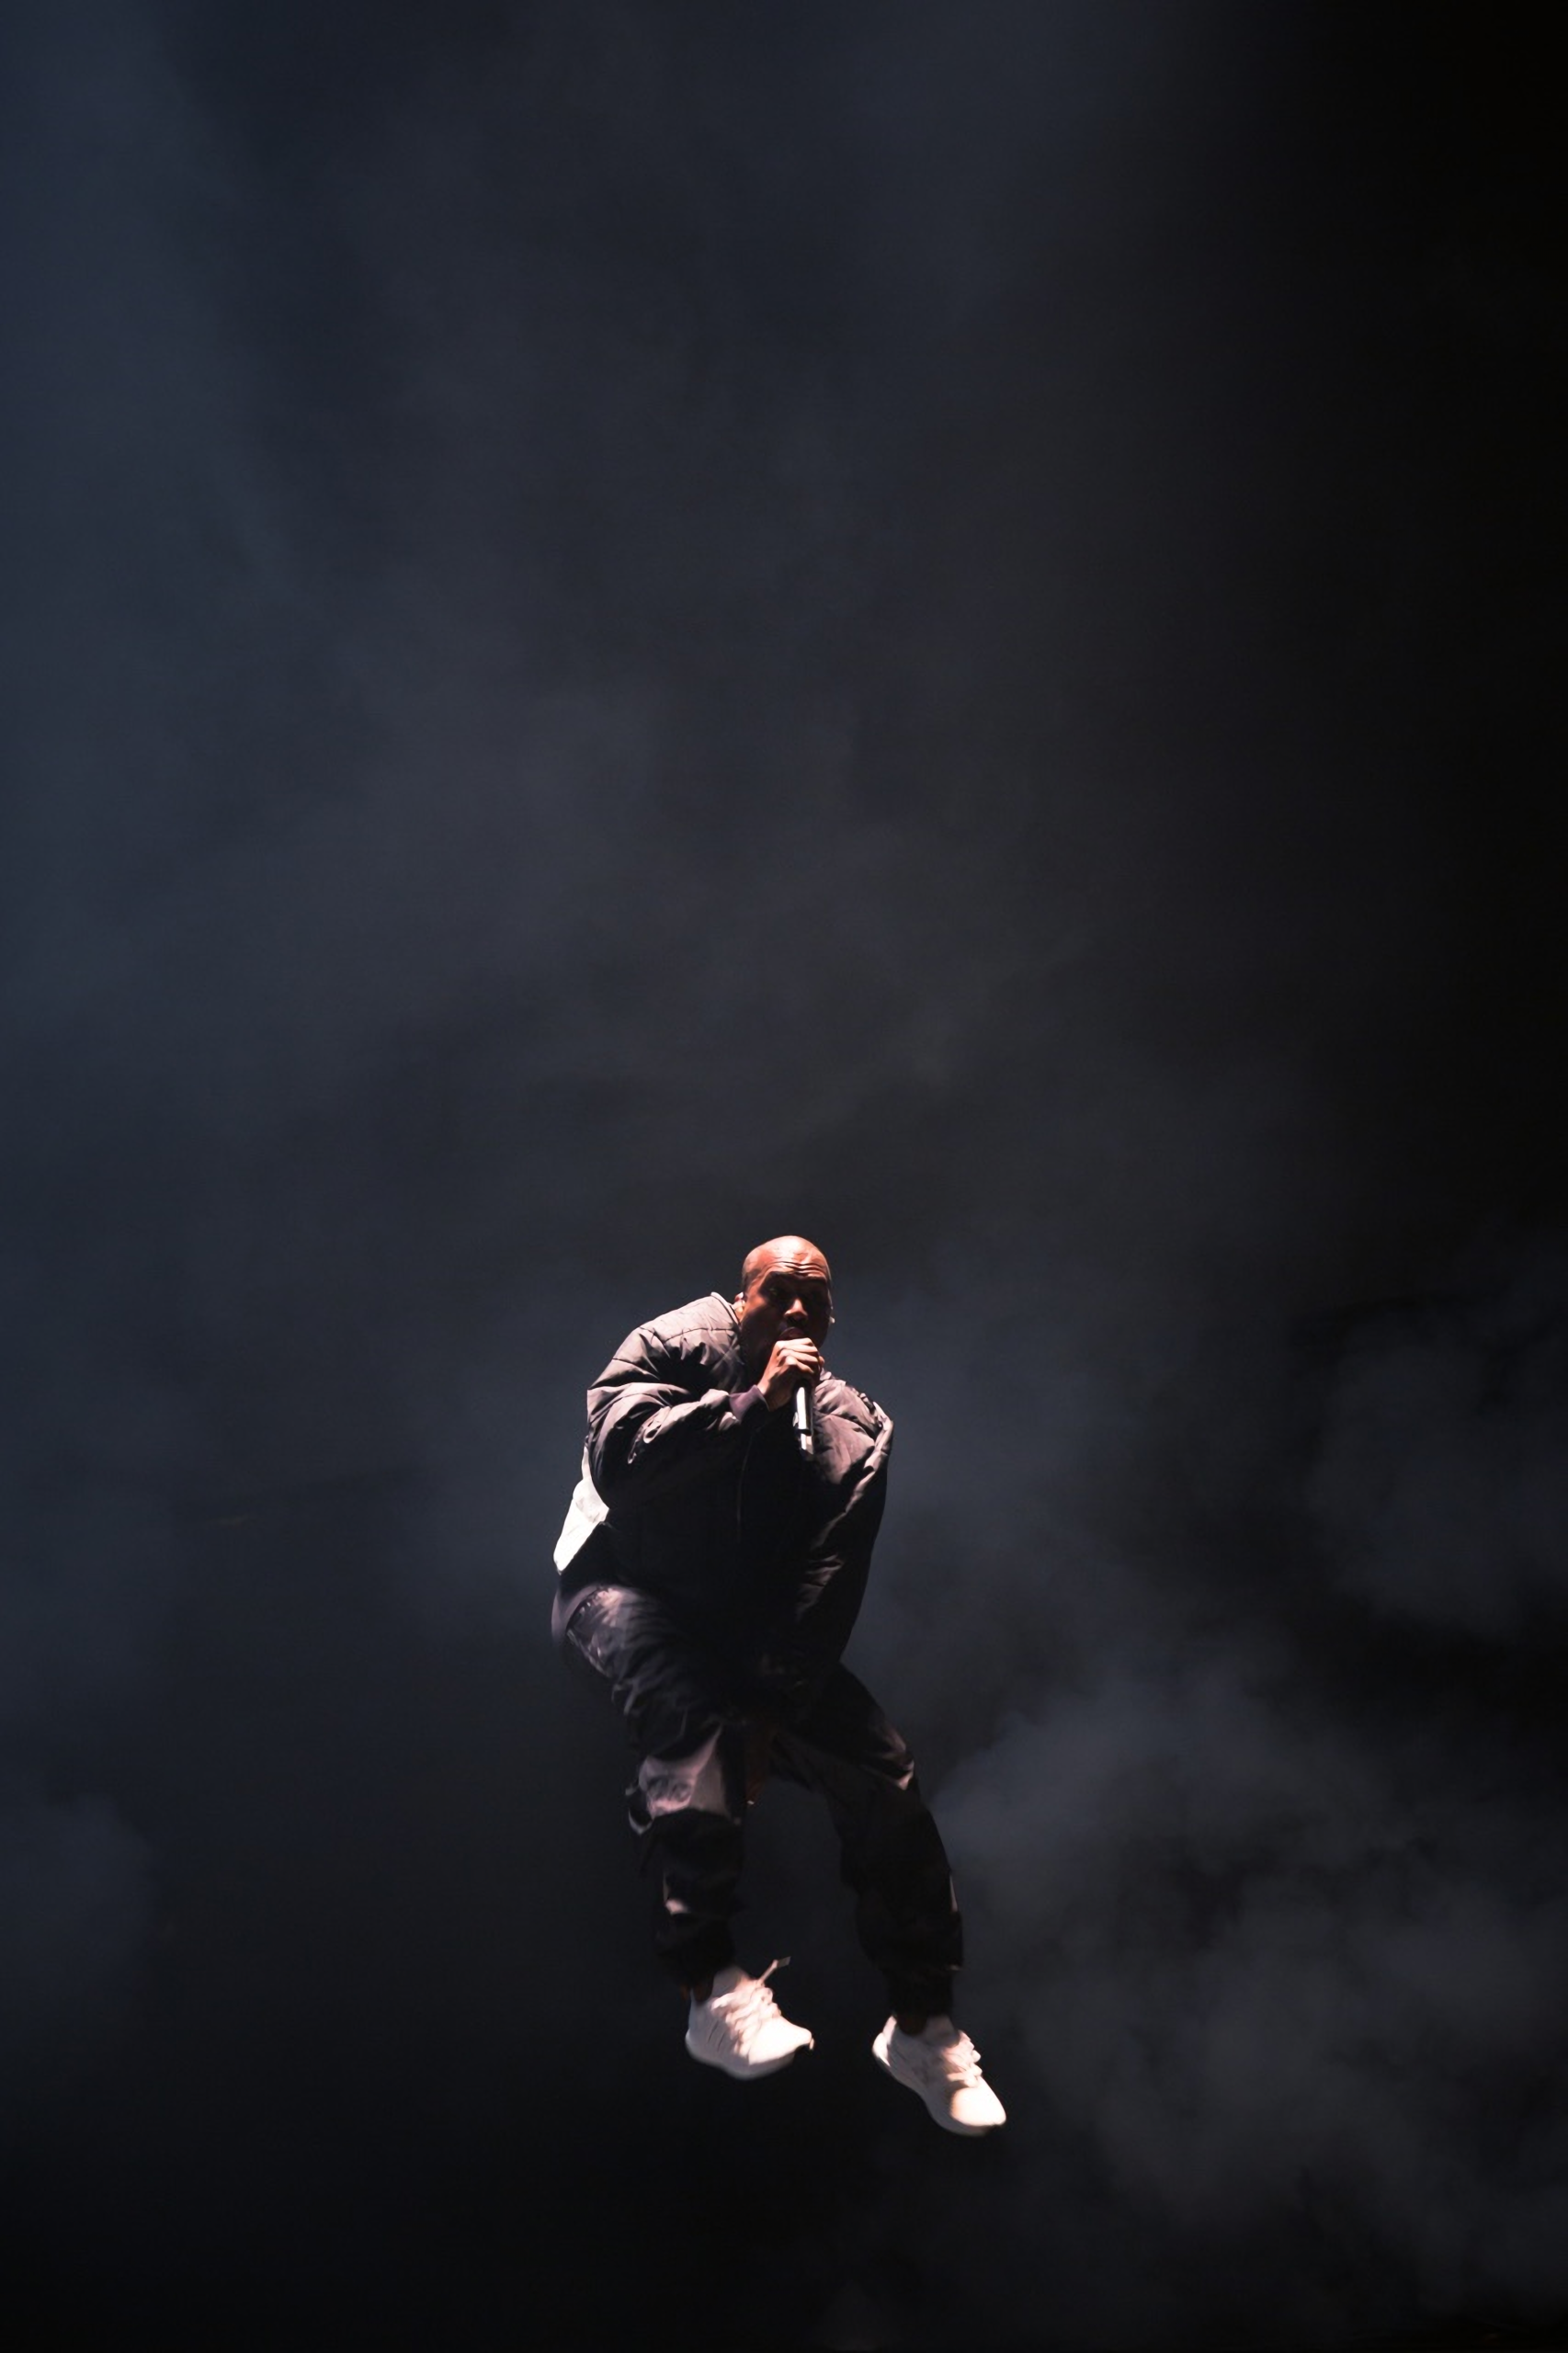 Kanye West Wallpaper Picture » Famous Wallpaper 1080p